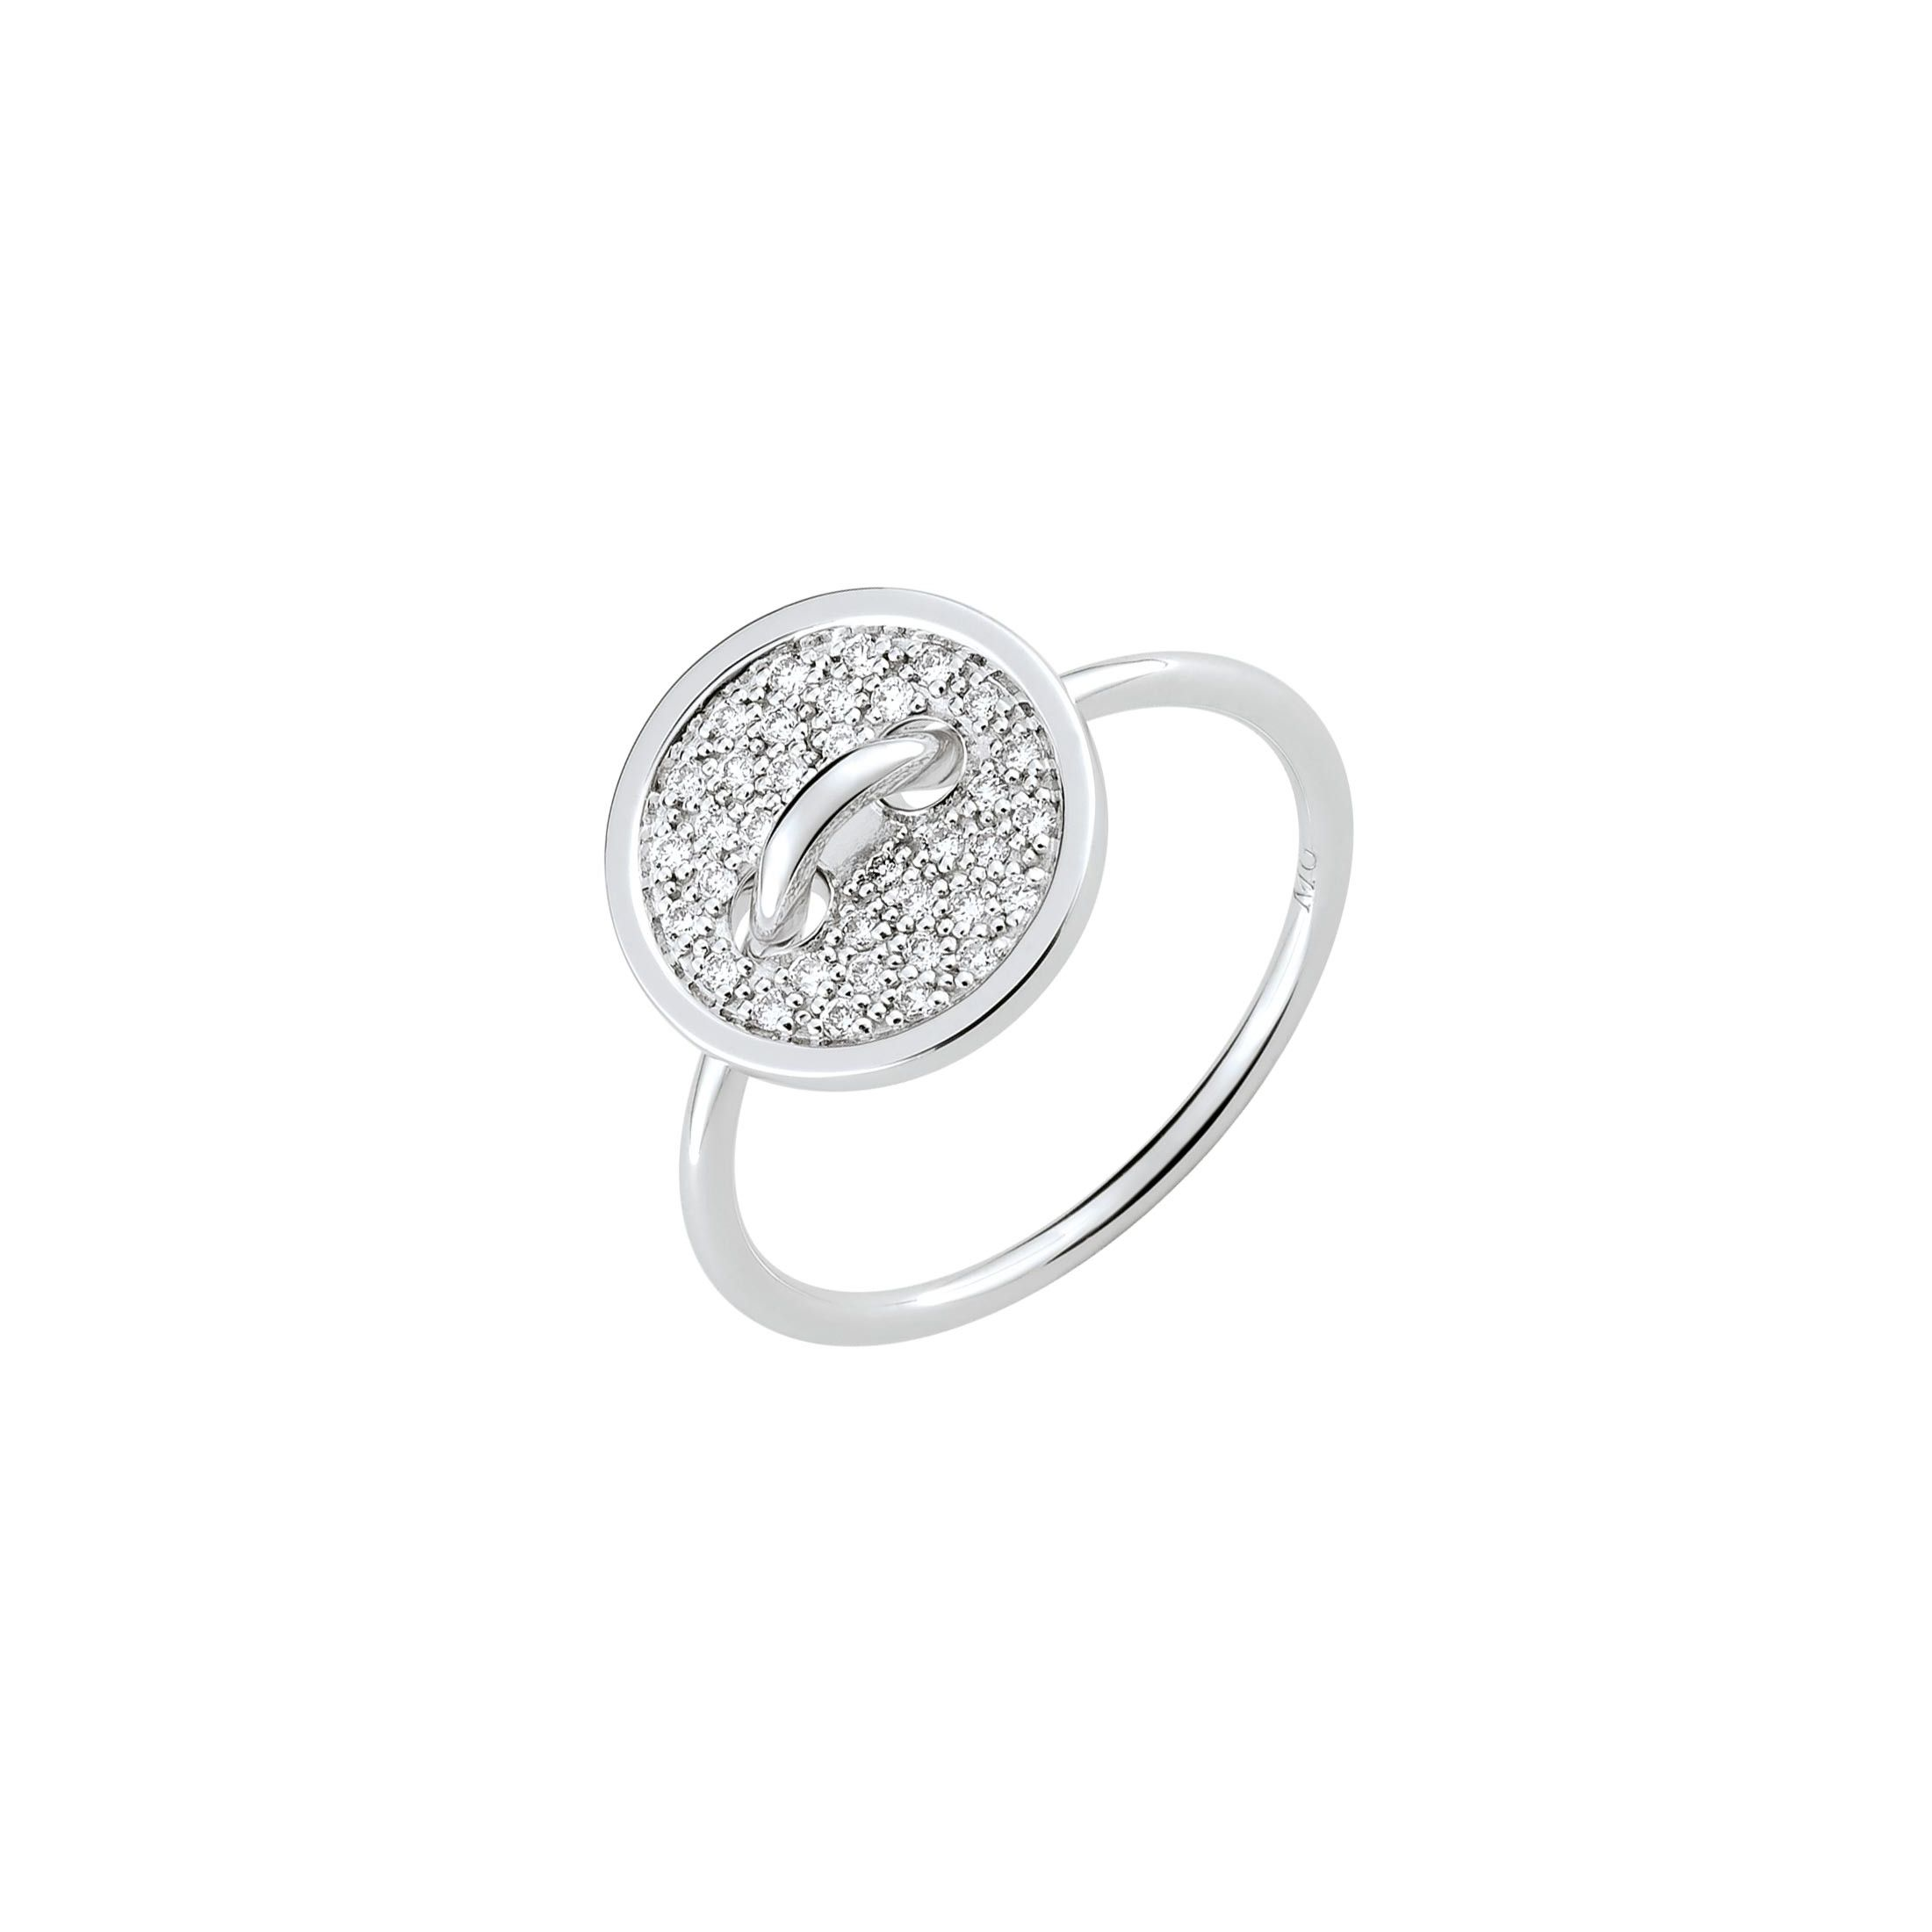 Bague Boutons de Louise or blanc et pavage diamants